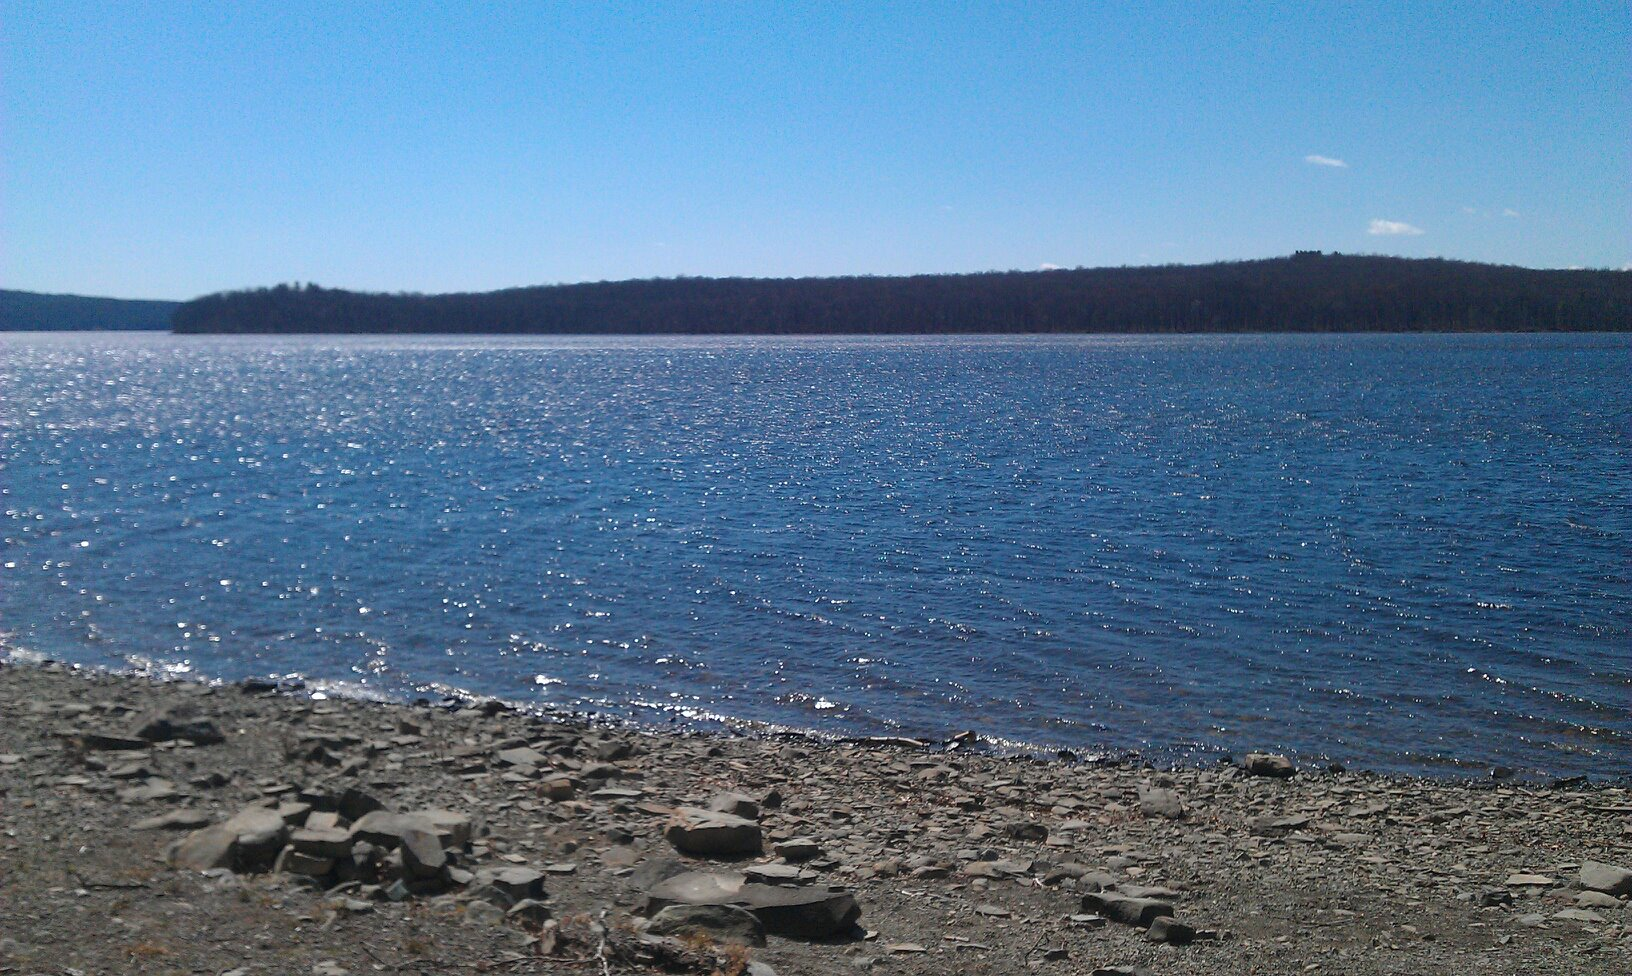 lake-wallenpaupack, lake wallenpaupack pa, lake wallenpaupack real estate, homes for sale lake wallenpaupack pa